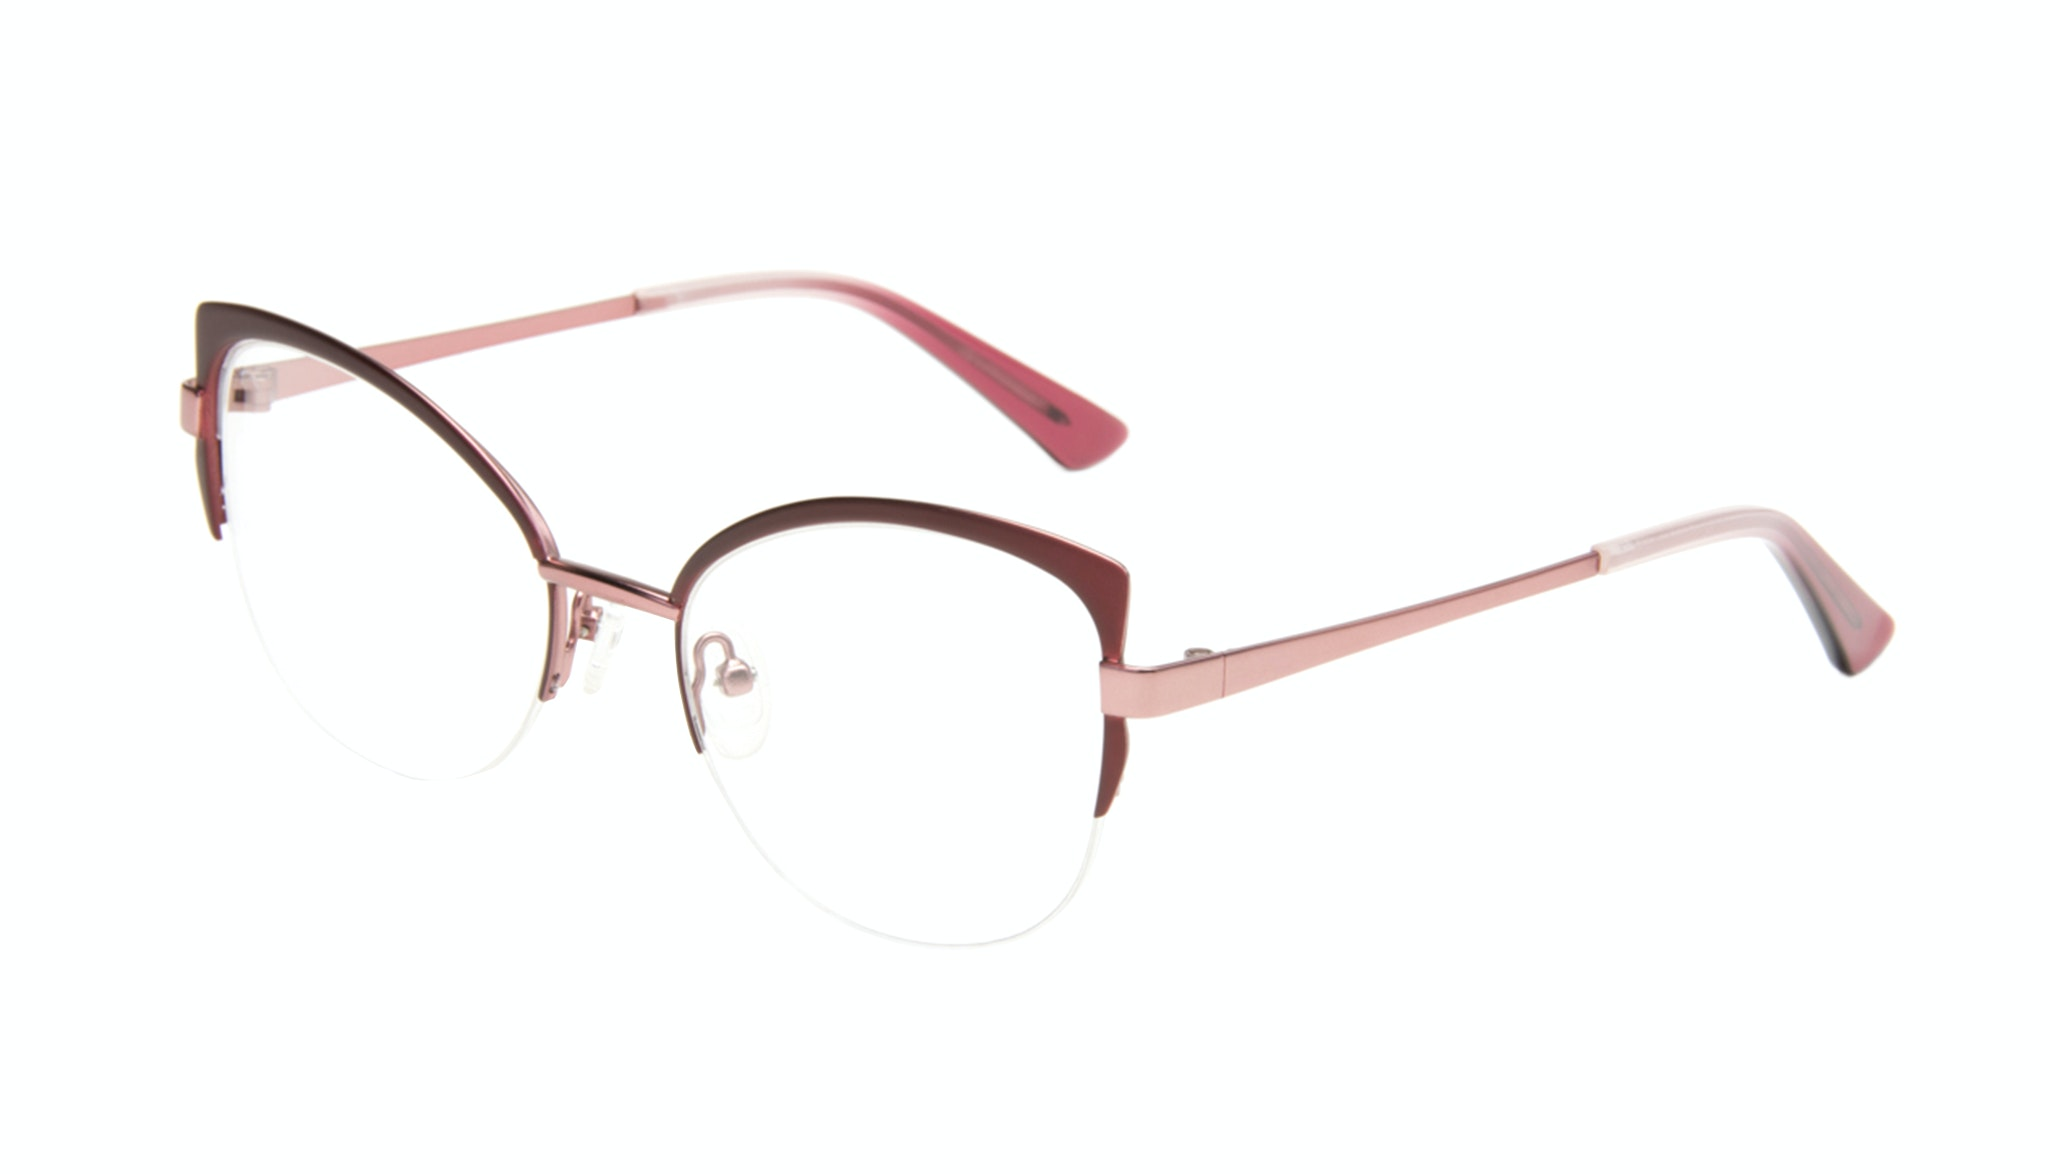 Affordable Fashion Glasses Cat Eye Eyeglasses Women Adore Cranberry Tilt